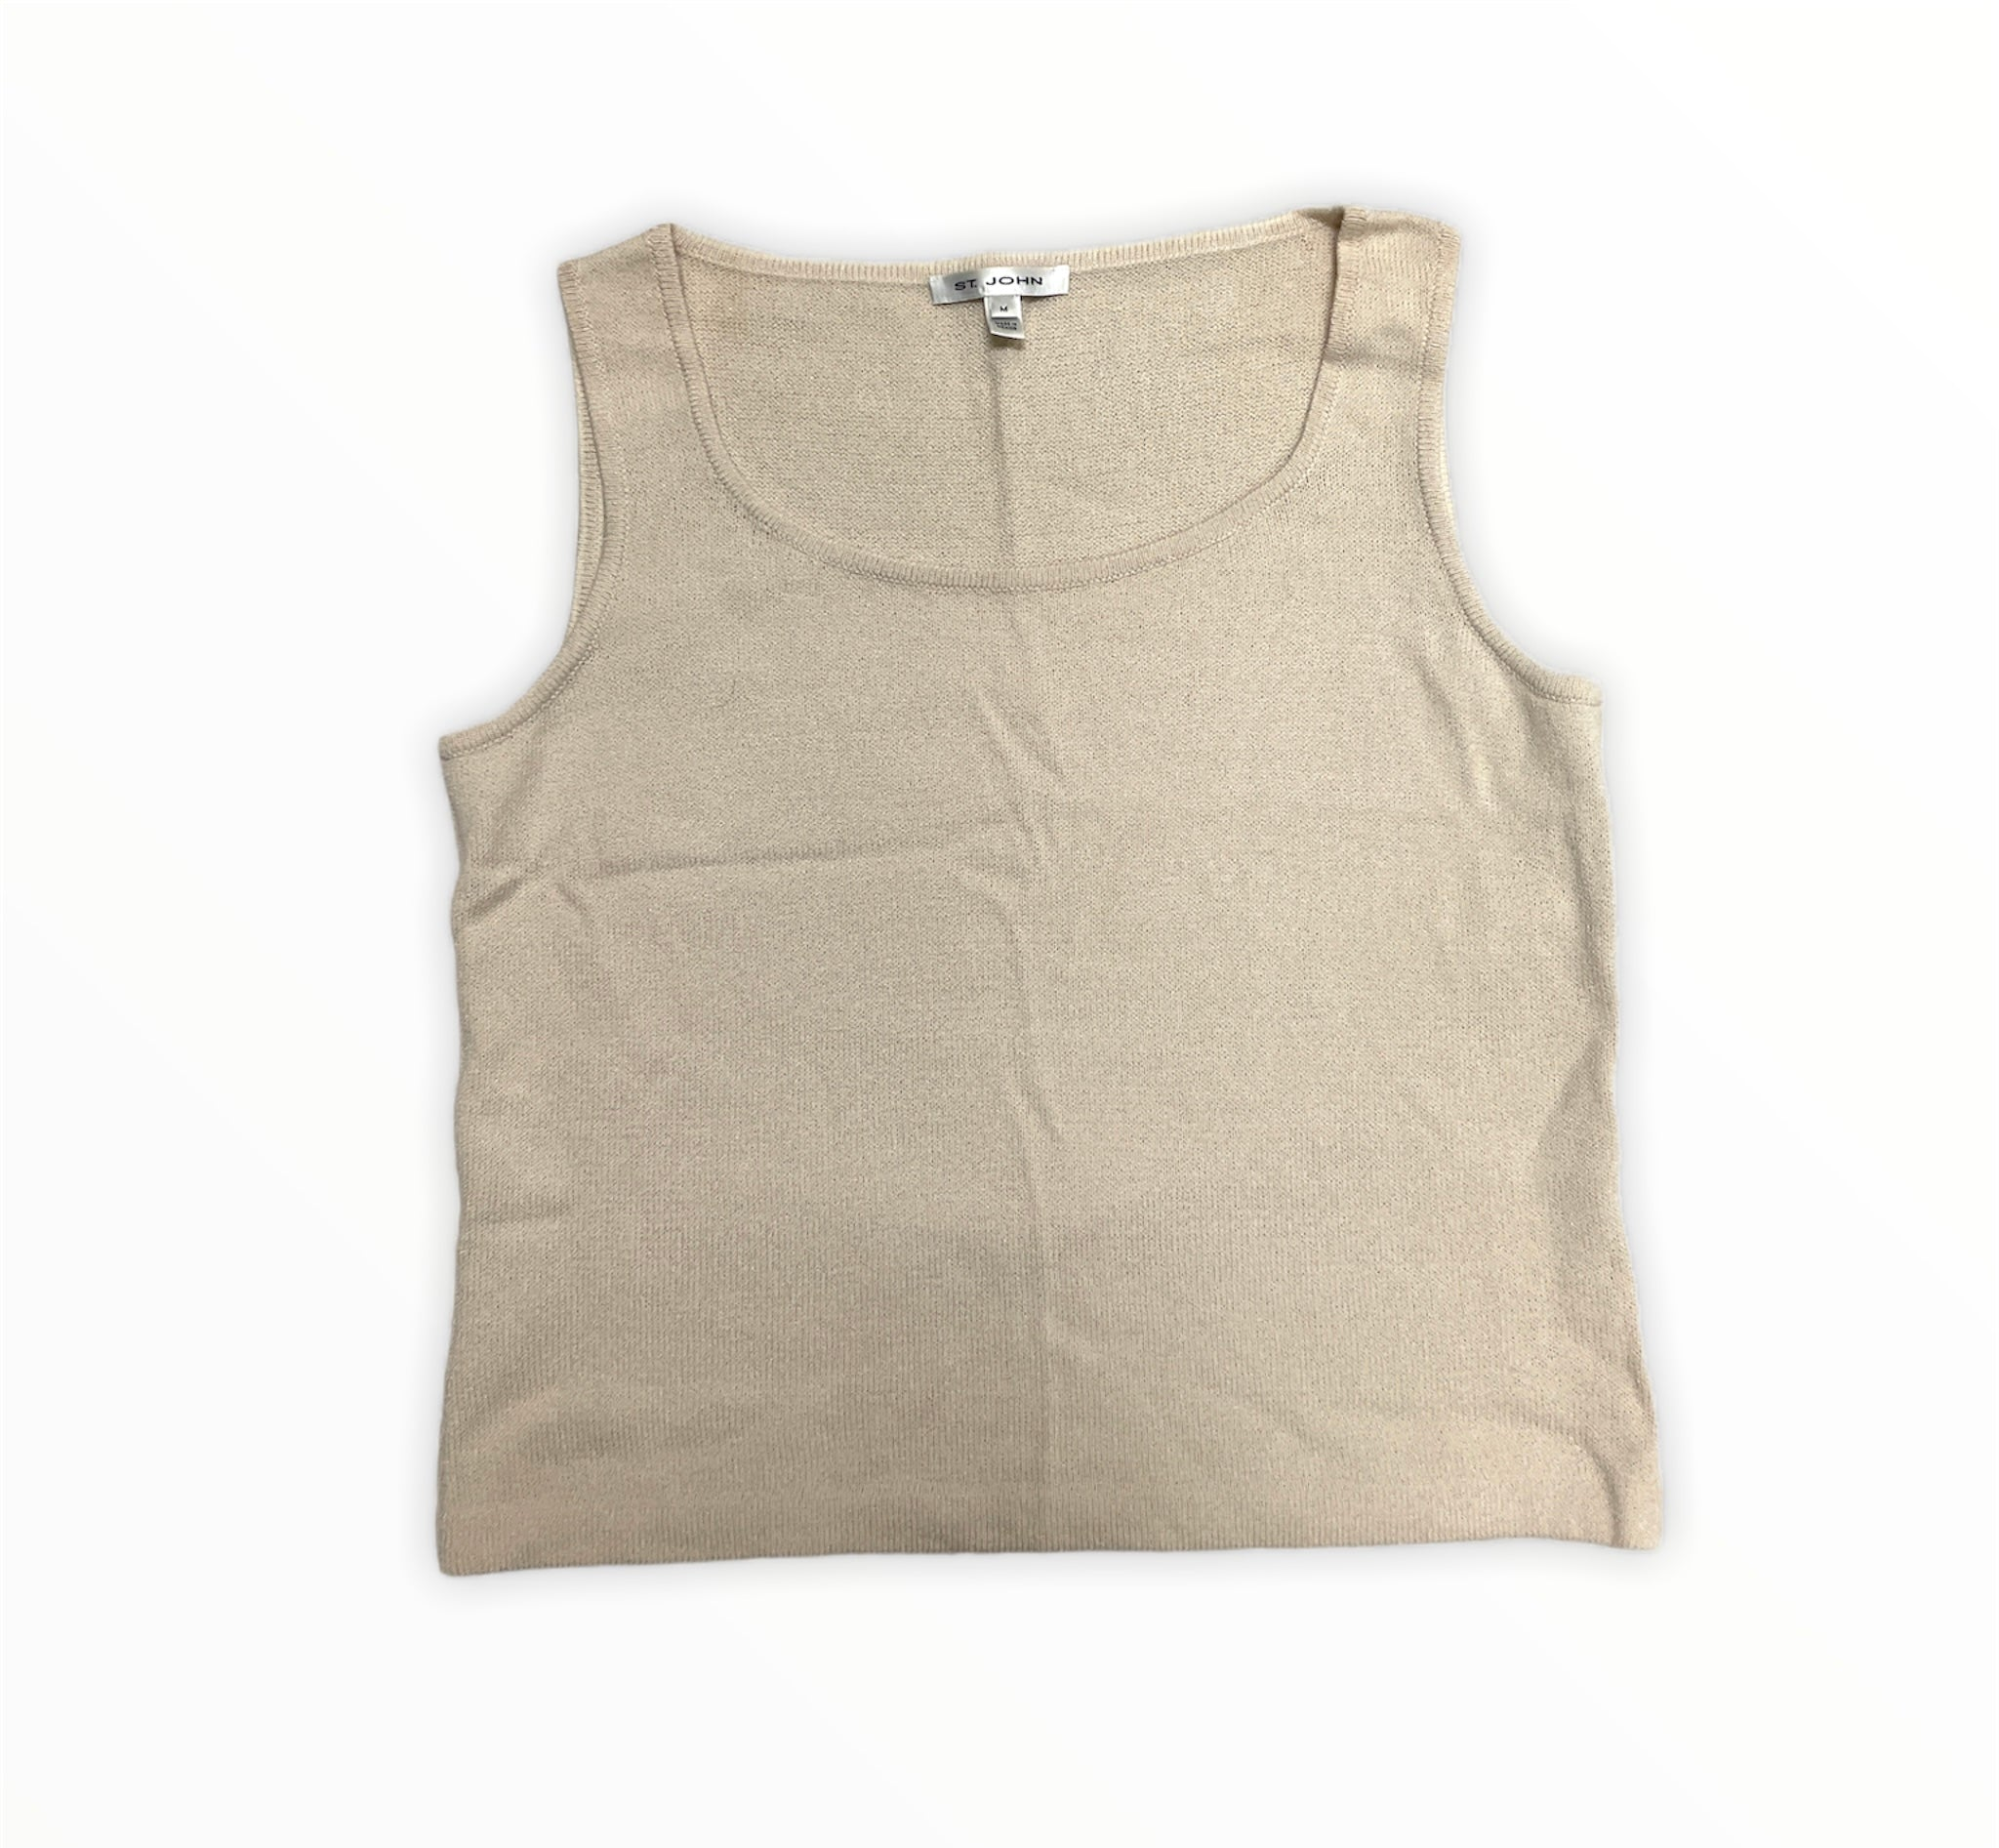 Primary Photo - BRAND: ST JOHN KNITS <BR>STYLE: TOP SLEEVELESS <BR>COLOR: CREAM <BR>SIZE: M <BR>SKU: 223-22318-115263